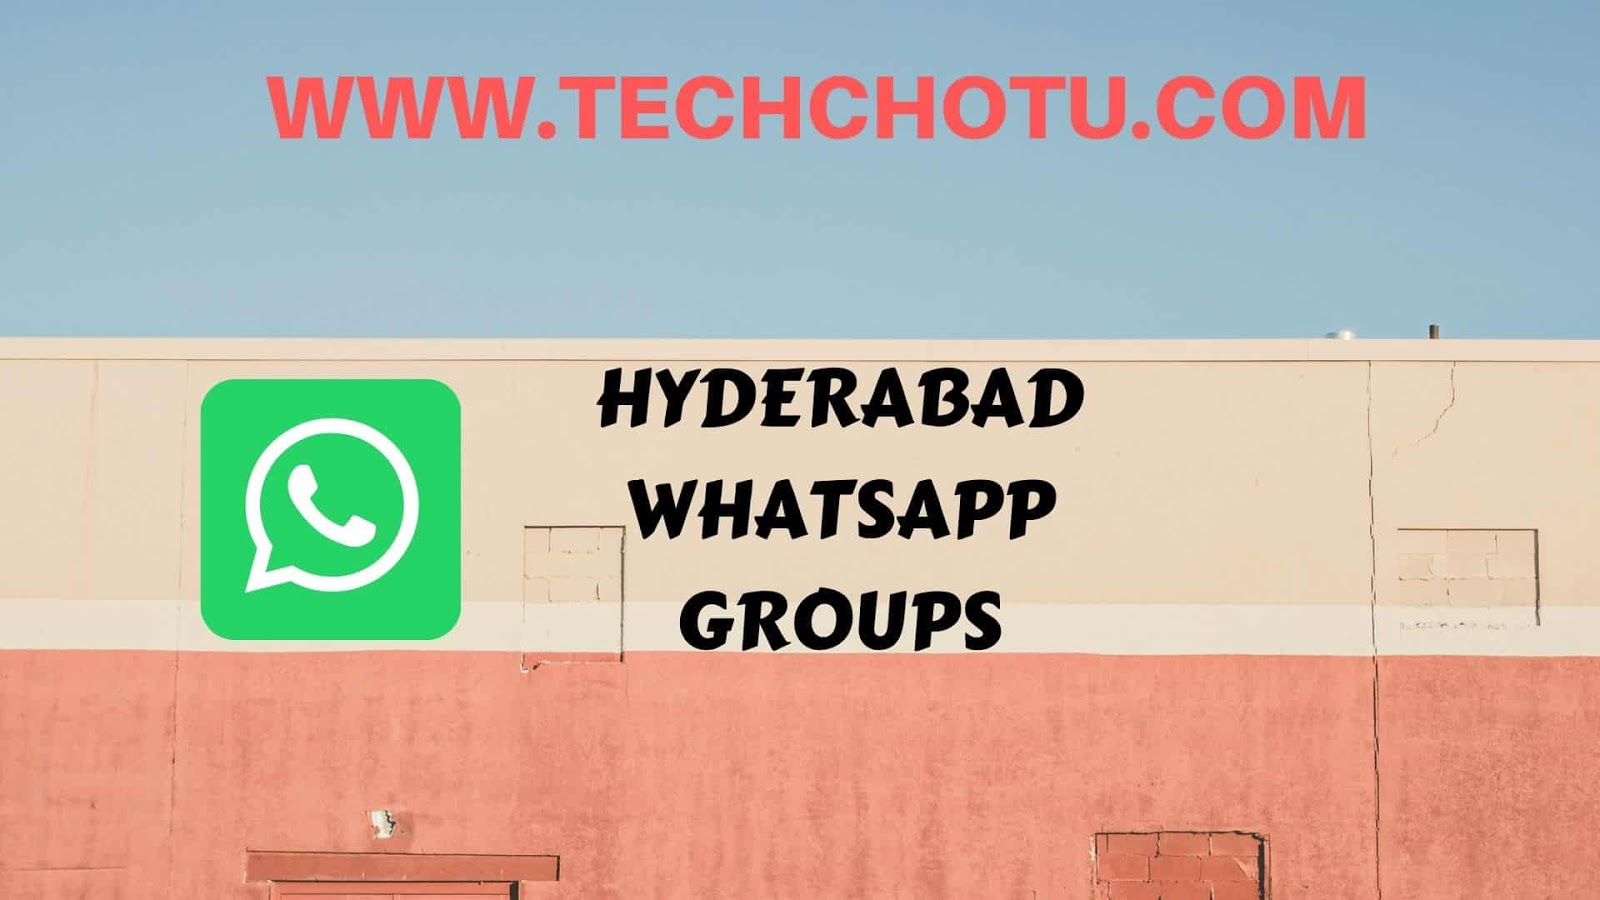 HYDERABAD WHATSAPP GROUP LINKS - TECHCHOTU 2019